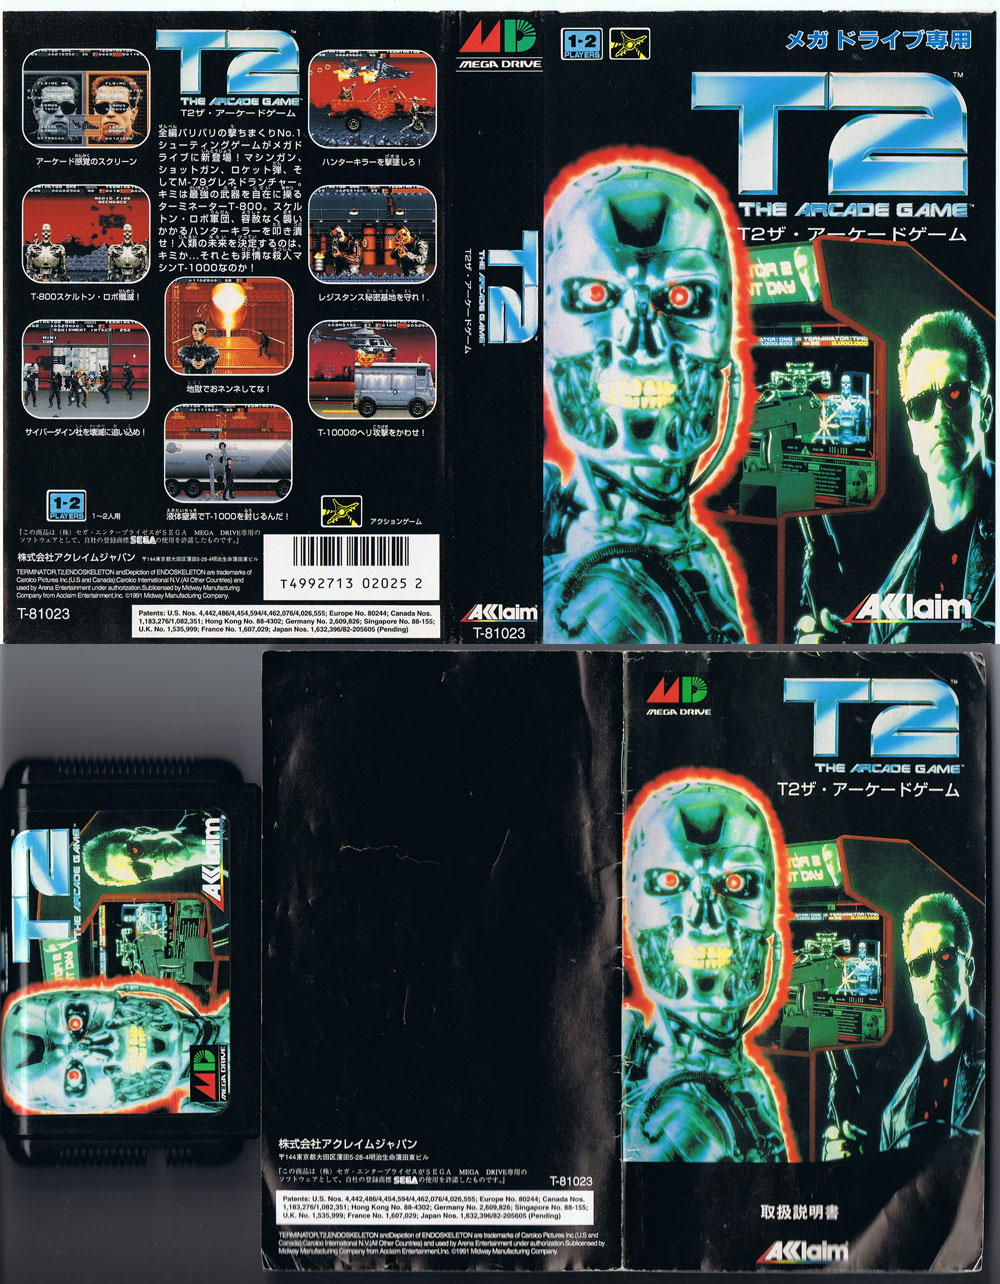 t2 the arcade game from acclaim - mega drive